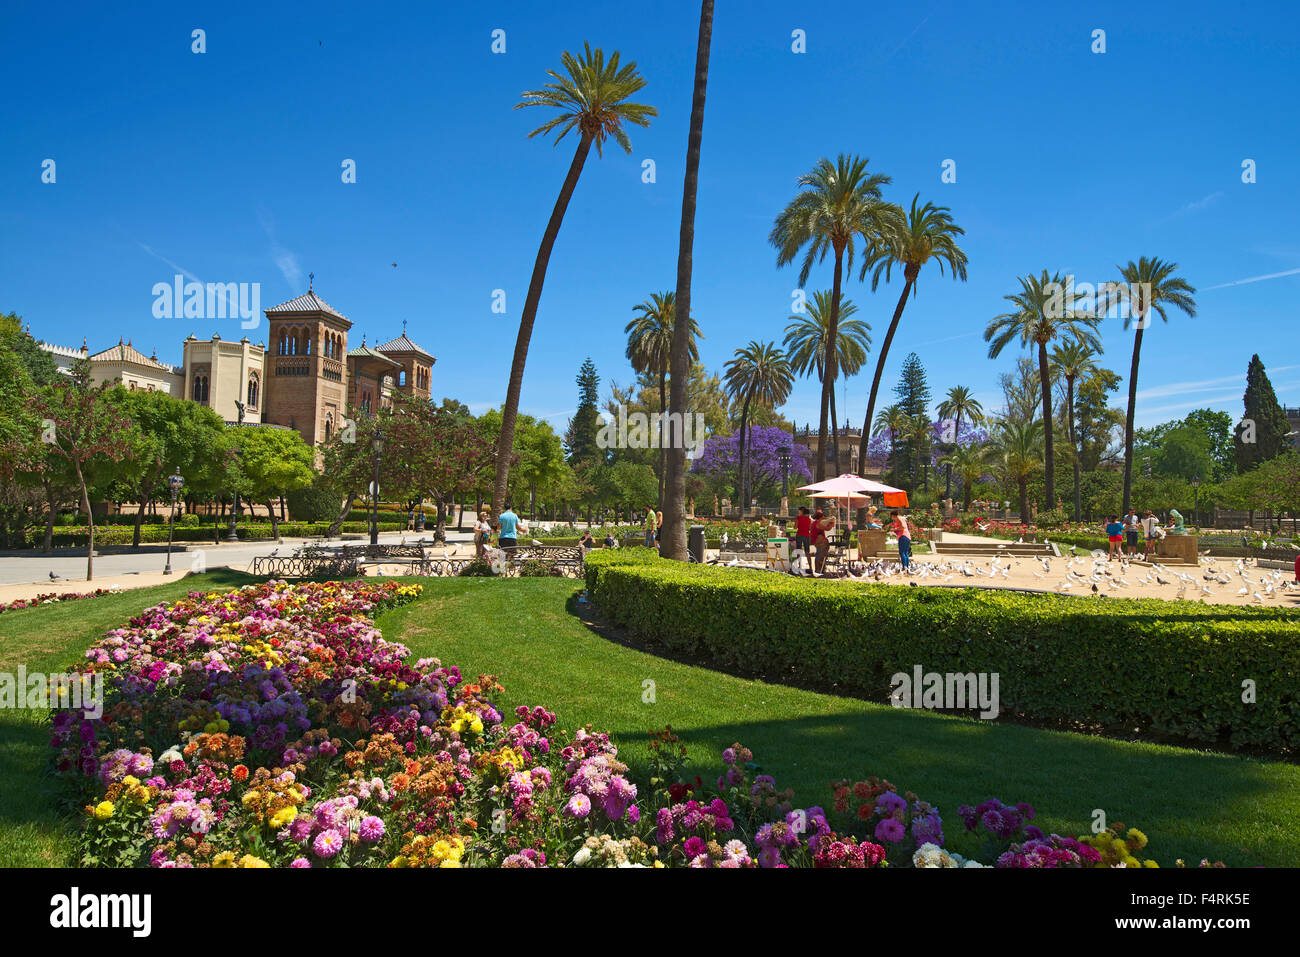 Andalusia, Spain, Europe, outside, day, Mudejar pavilion, park Maria Luisa, Seville, town park, park, nobody - Stock Image